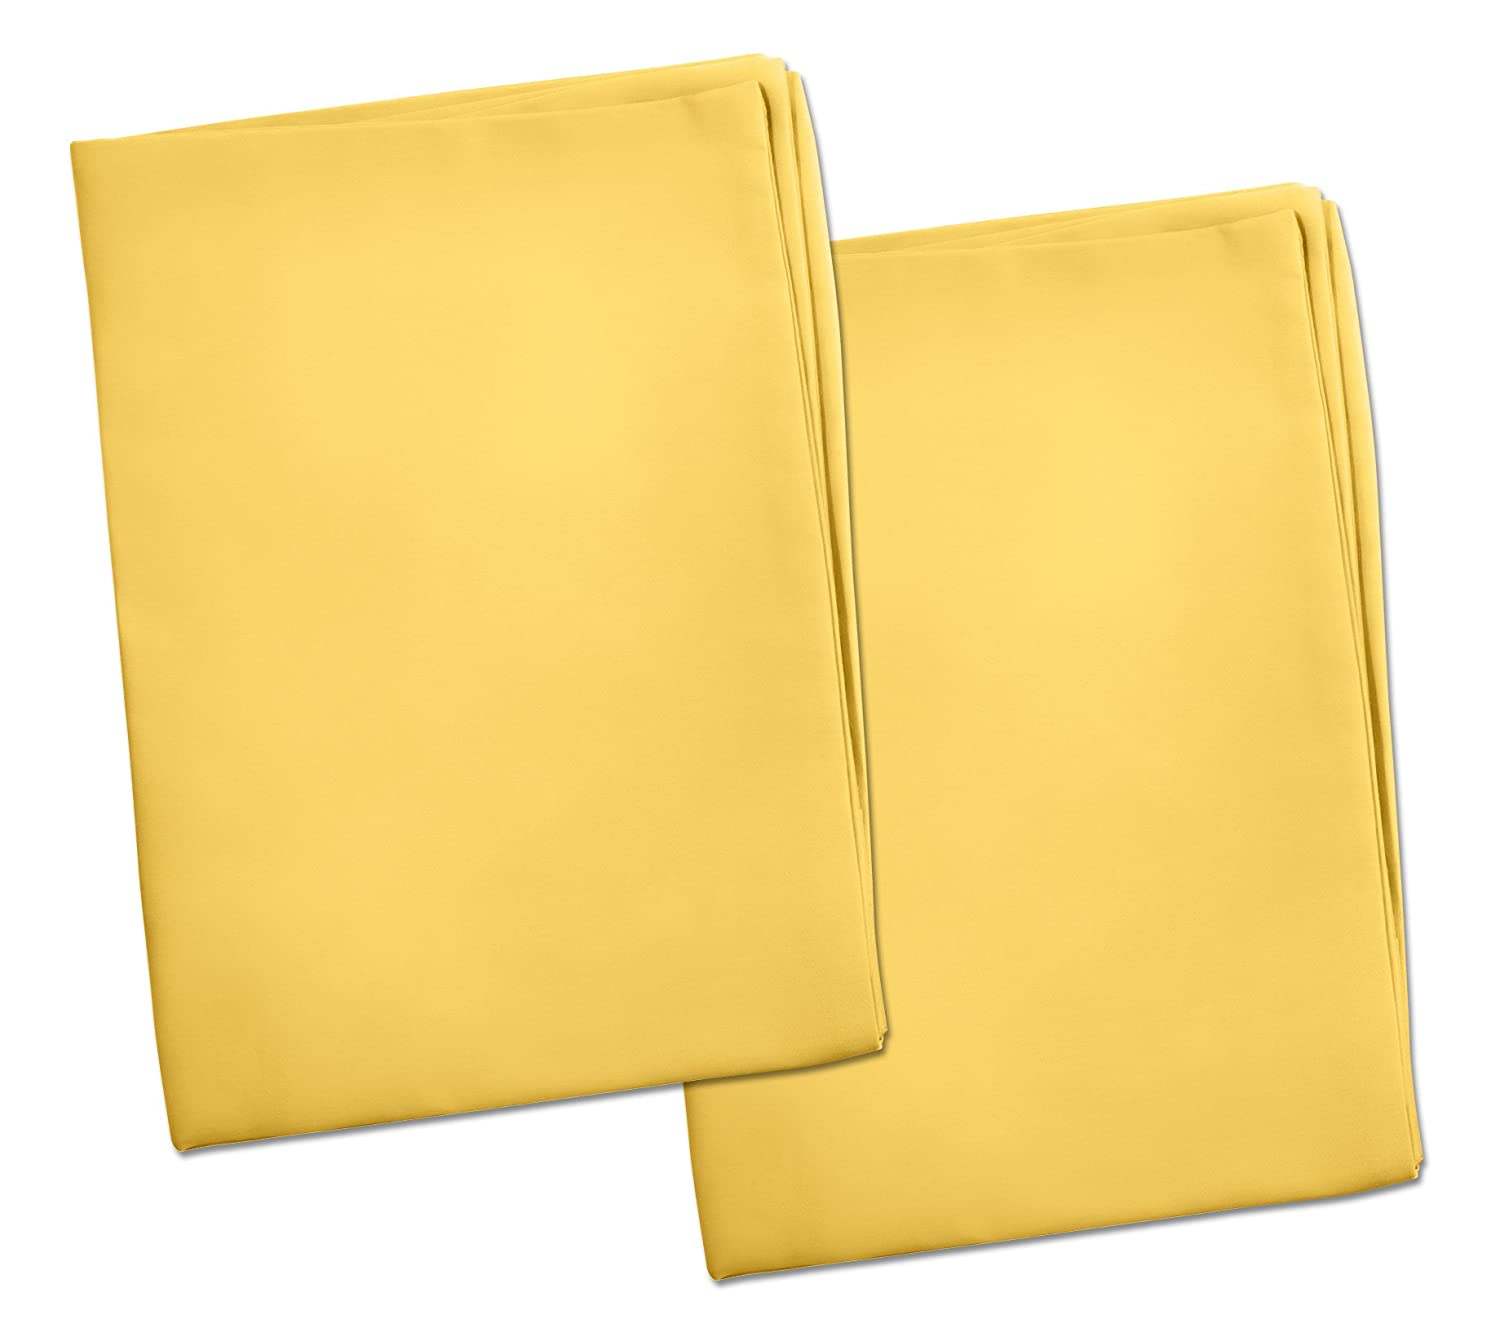 Bombing new work 2 Yellow Toddler National products Pillowcases - Style Size Pillows for Envelope